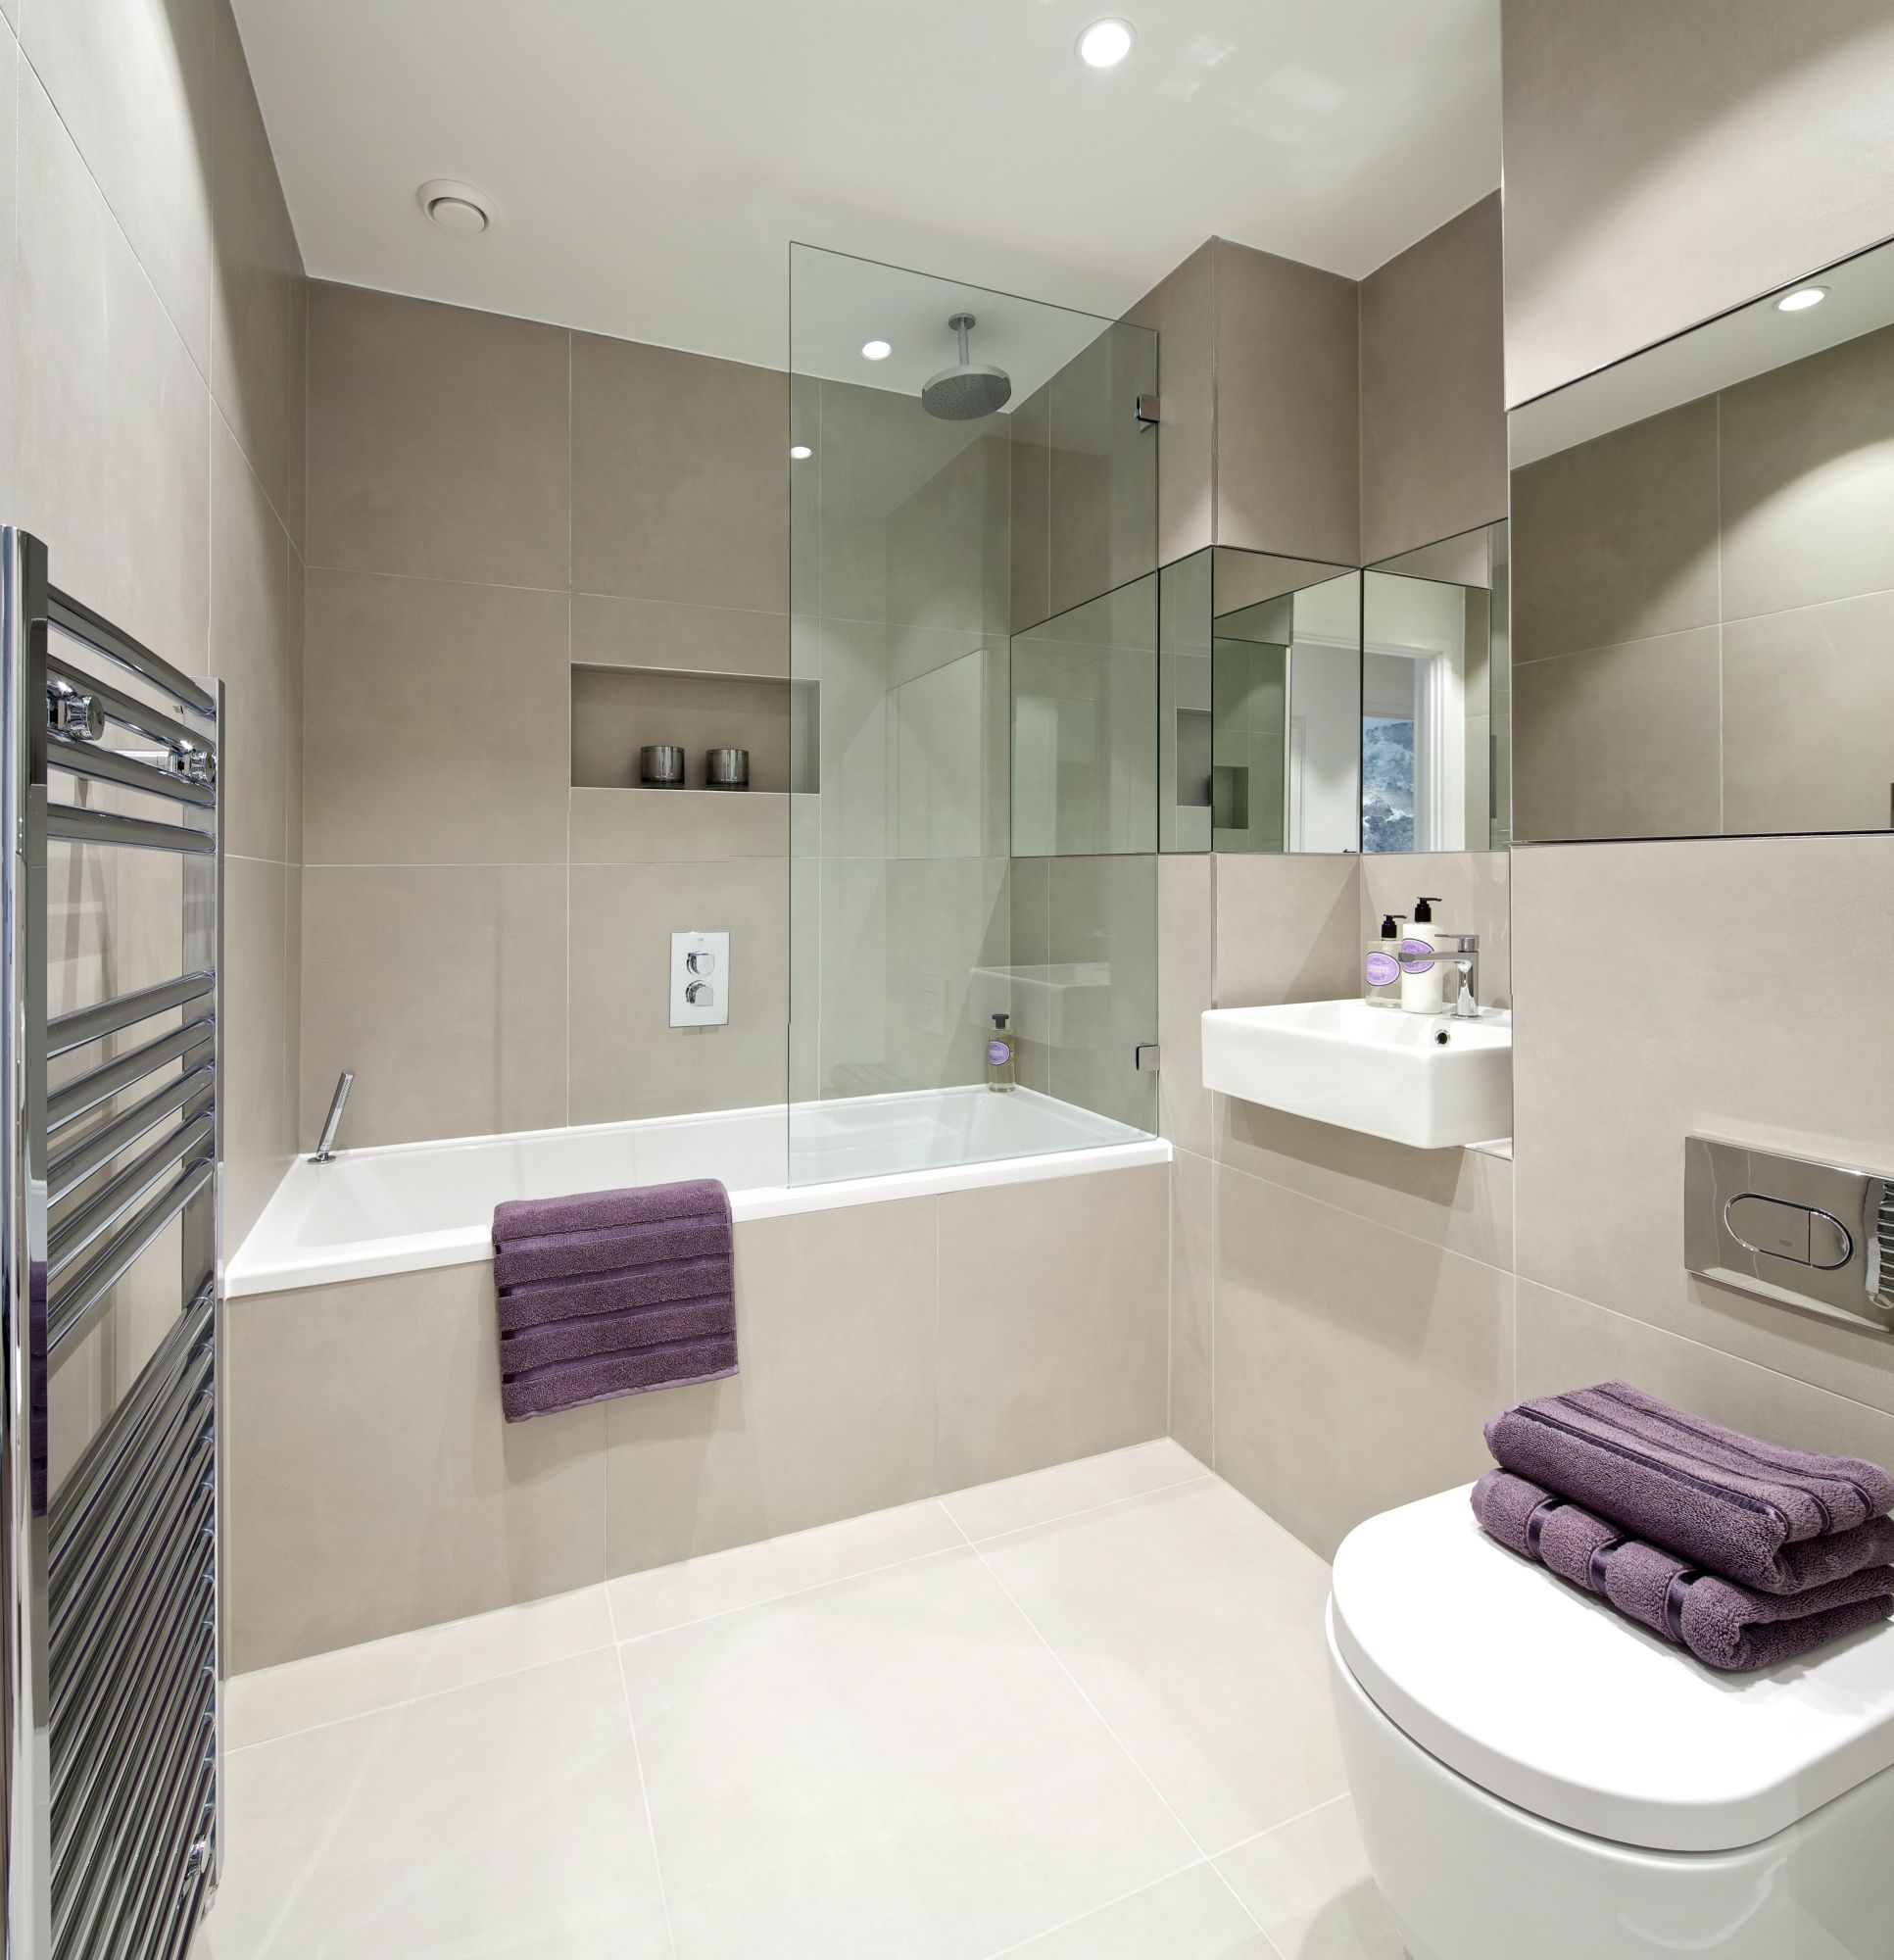 Stunning Home Interiors Bathroom Another Stunning Show Home - Big towels for small bathroom ideas